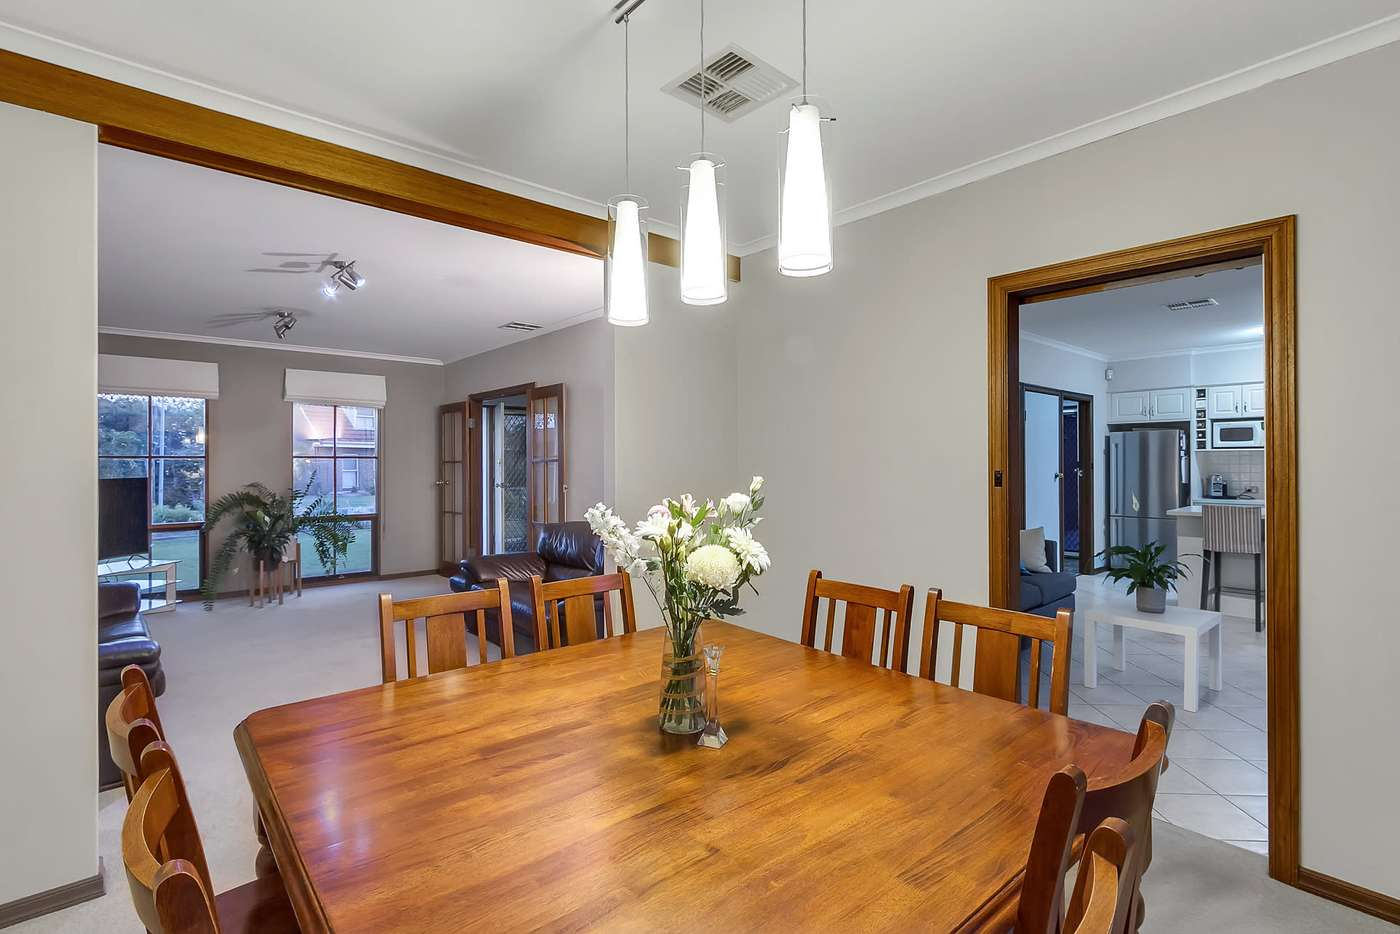 Fifth view of Homely house listing, 2 Tobago Court, West Lakes SA 5021